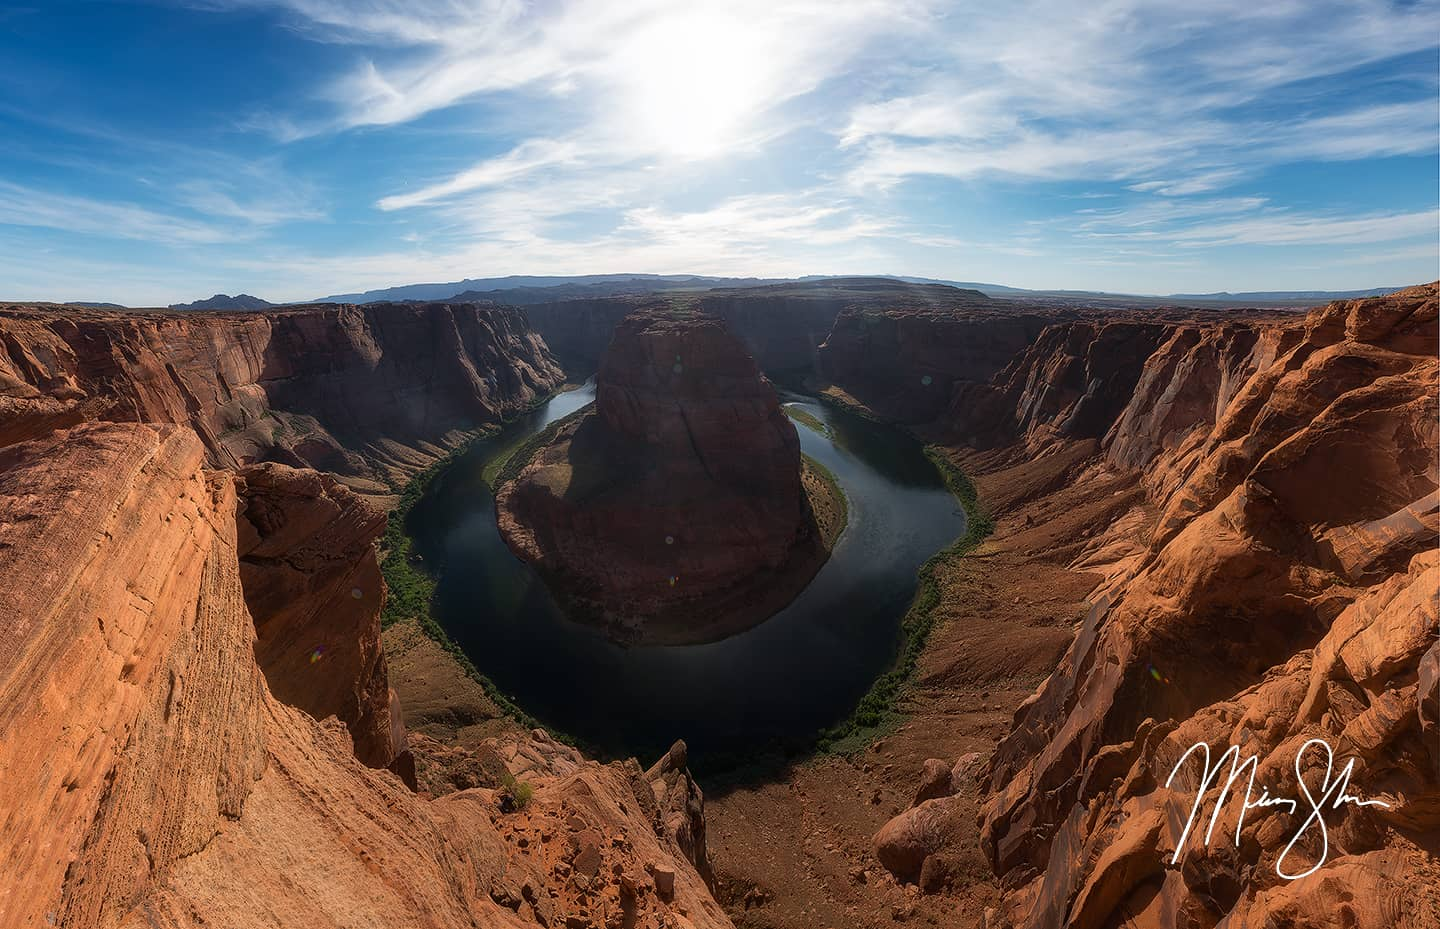 Open edition fine art print of Horseshoe Bend Panorama from Mickey Shannon Photography. Location: Horseshoe Bend, Page, Arizona